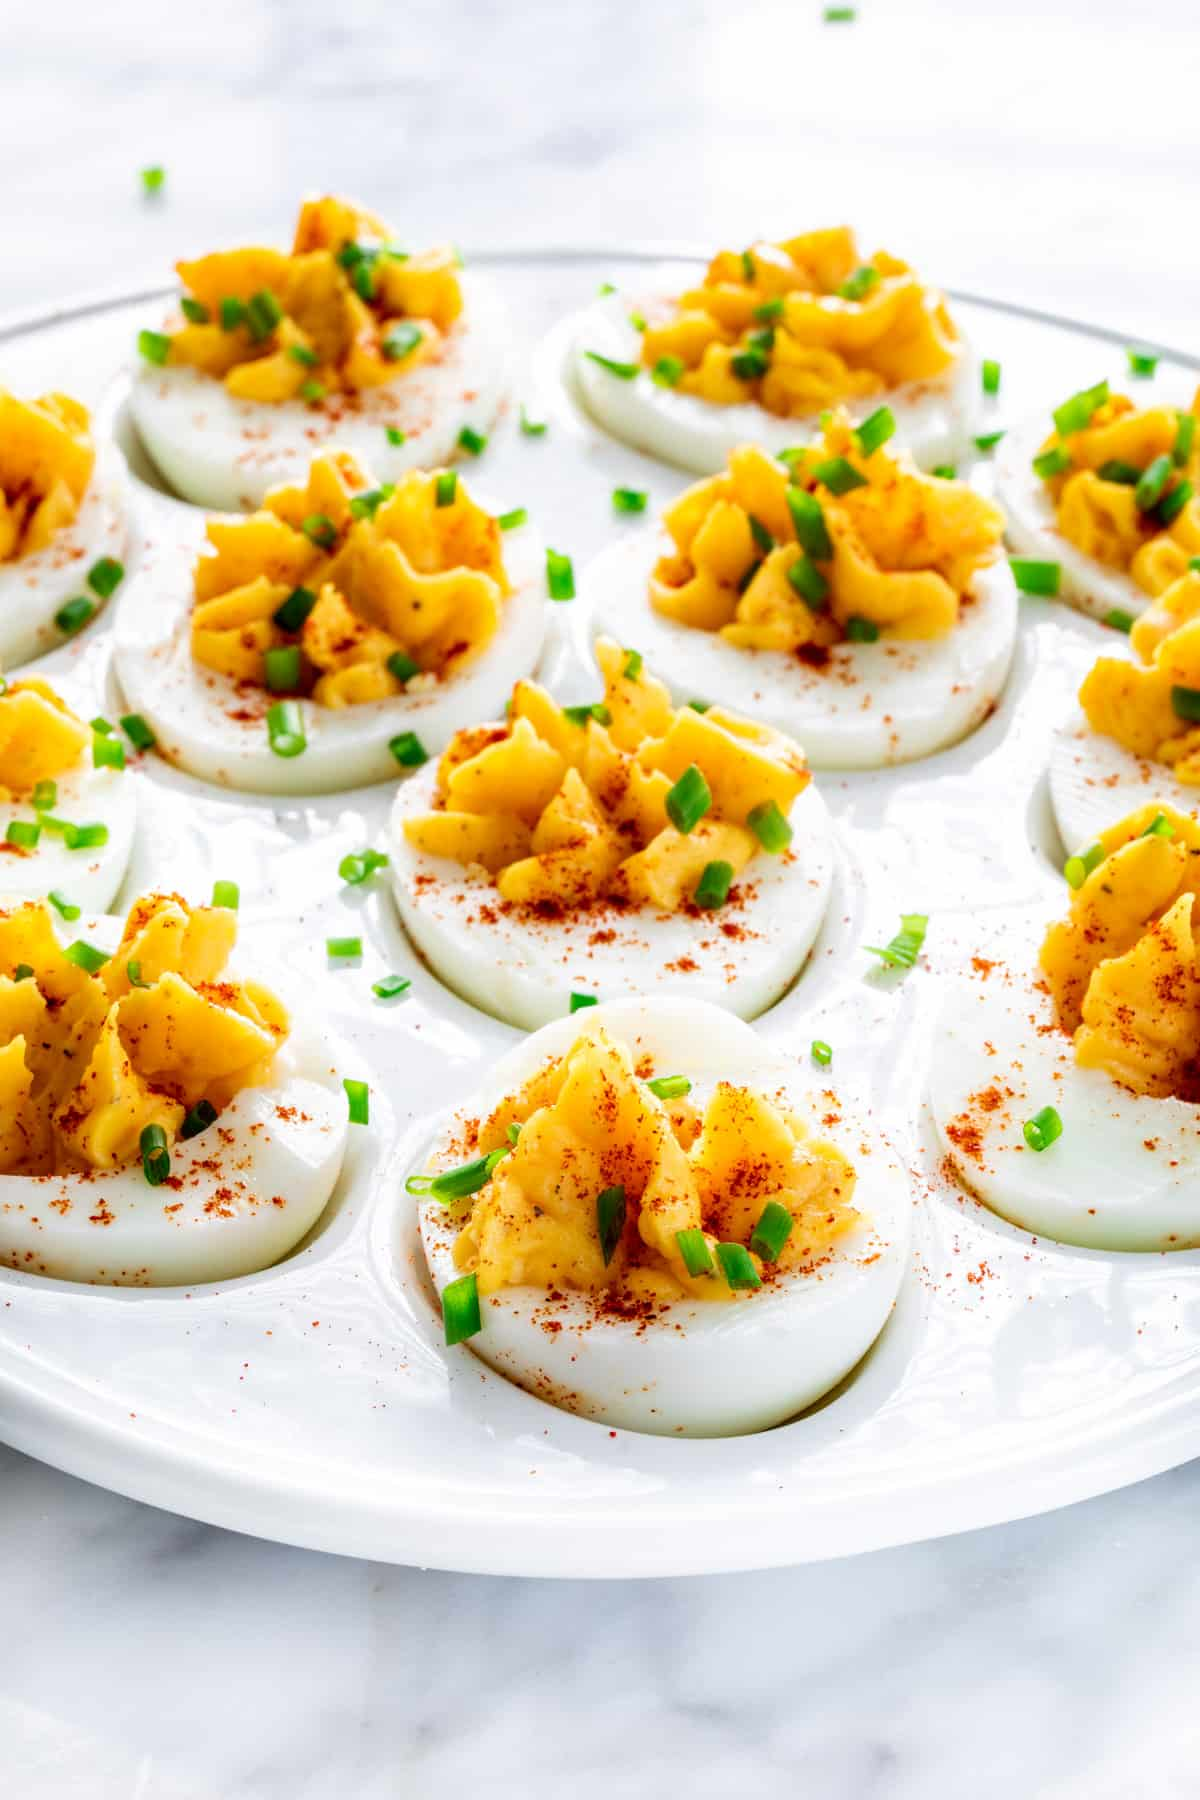 deviled eggs on a platter garnished with paprika and chives